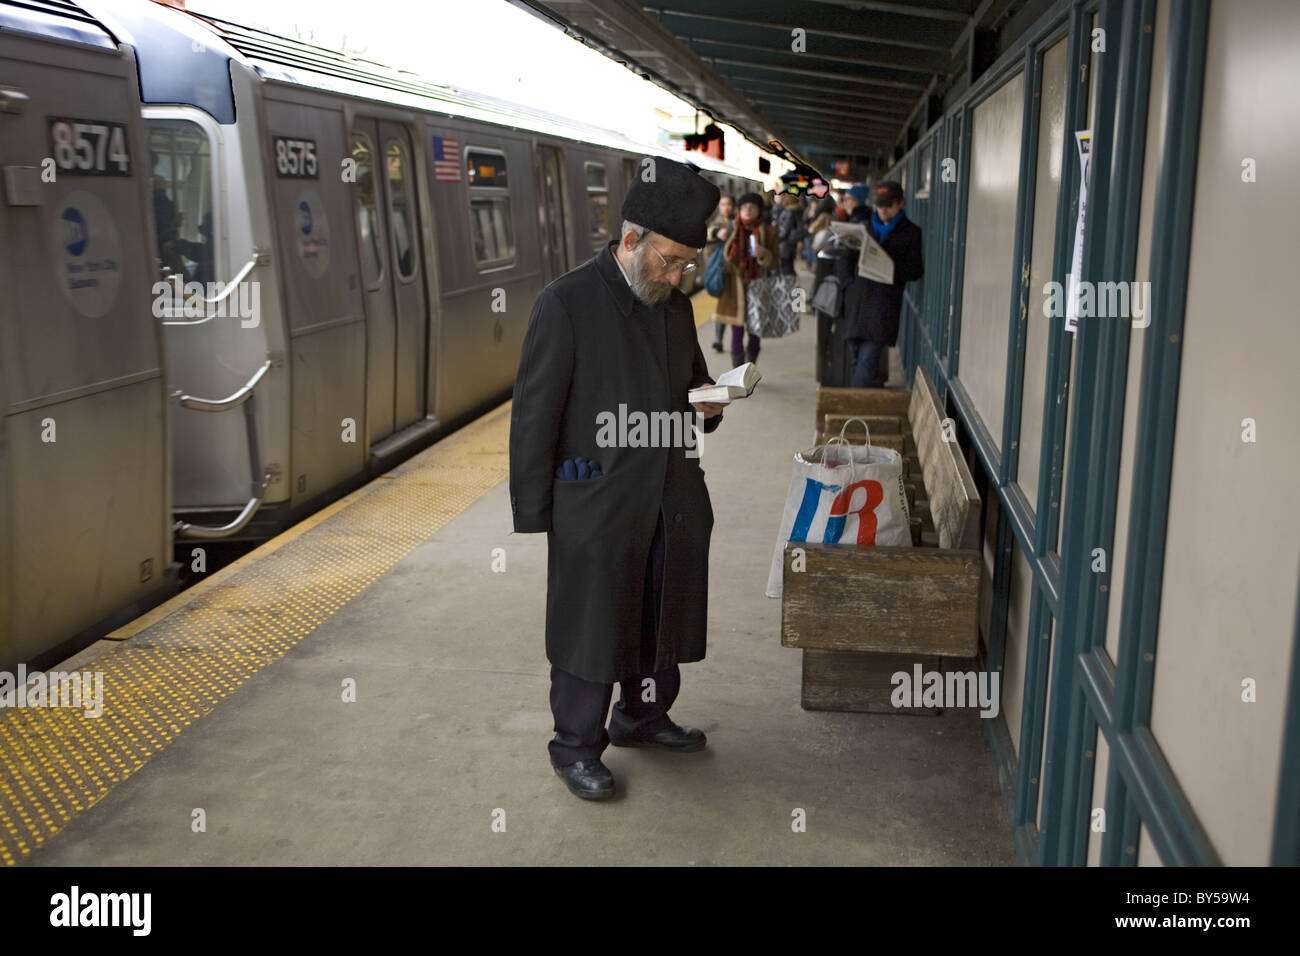 Orthodox Jewish man says prayers on the subway platform as the train enters the station in Williamsburg, Brooklyn, - Stock Image